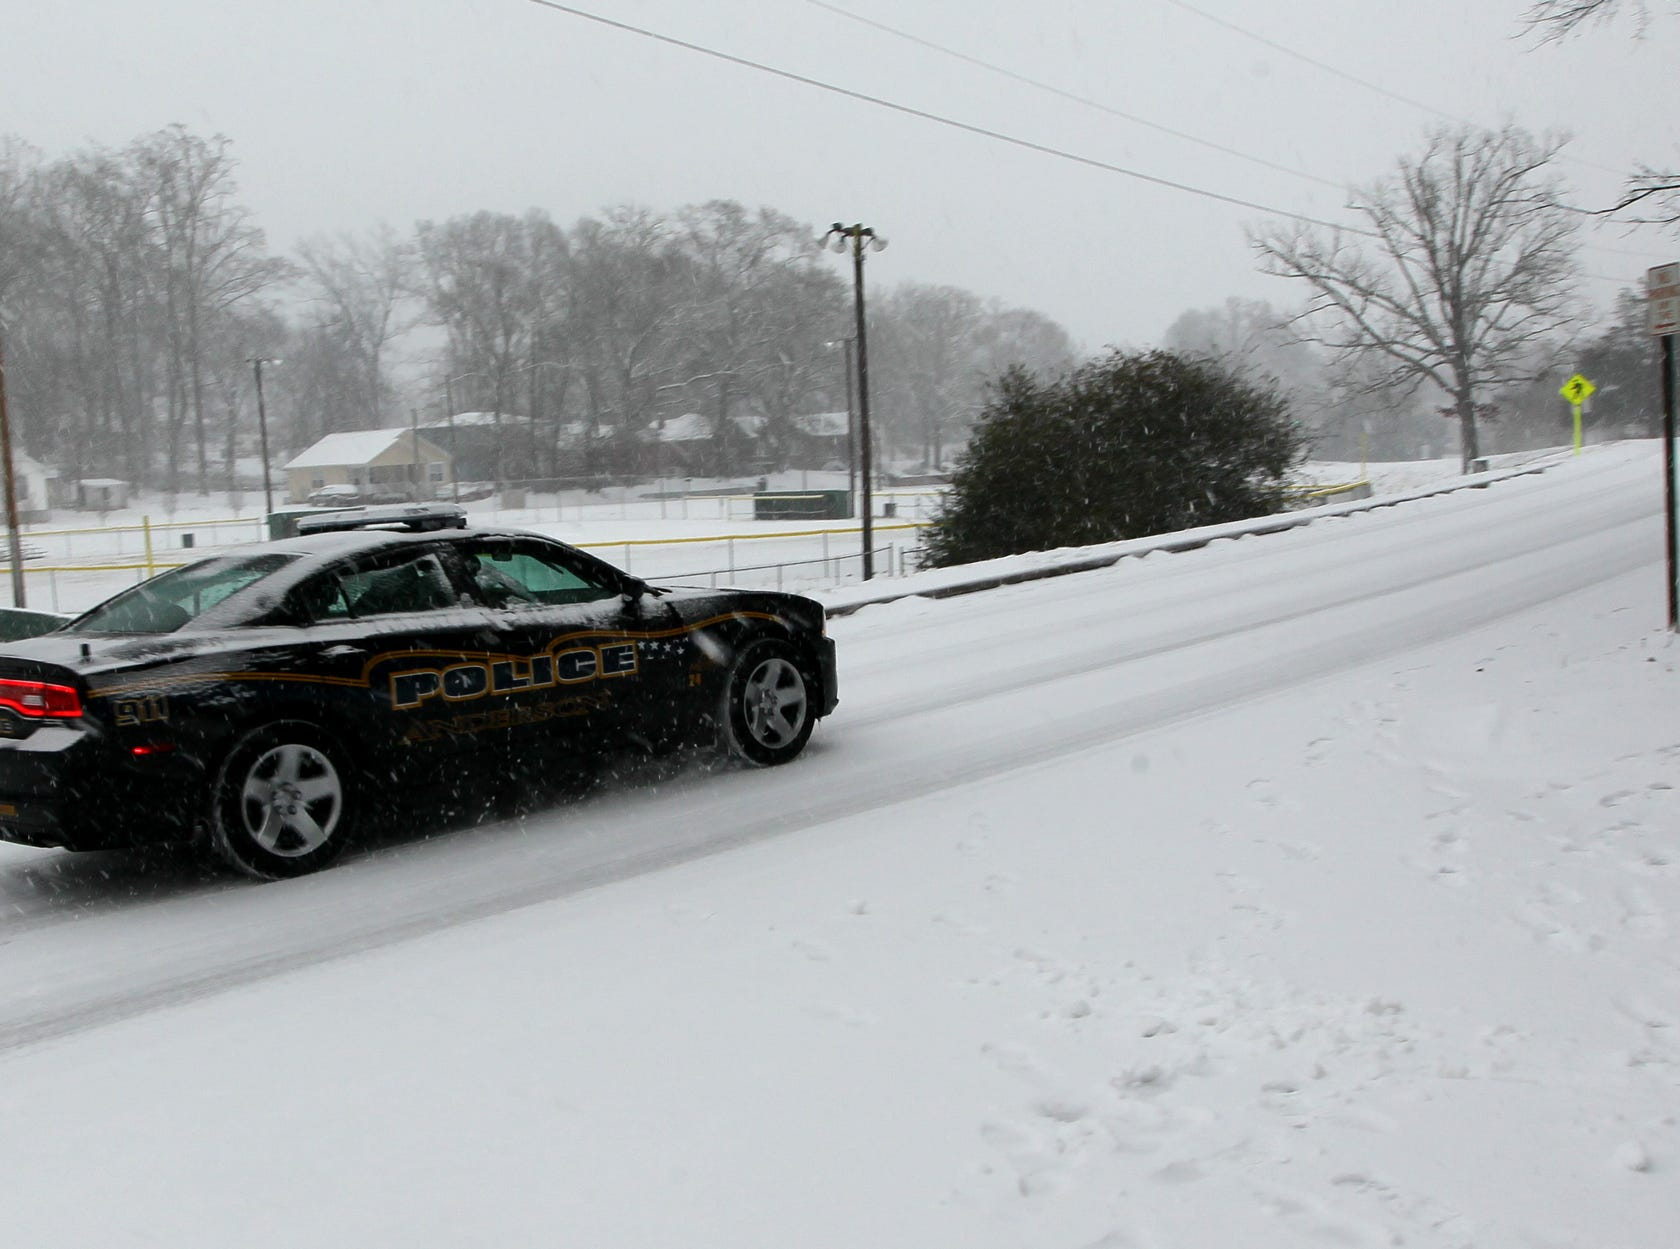 An Anderson police car drives by Linley Park in Anderson in 2014.